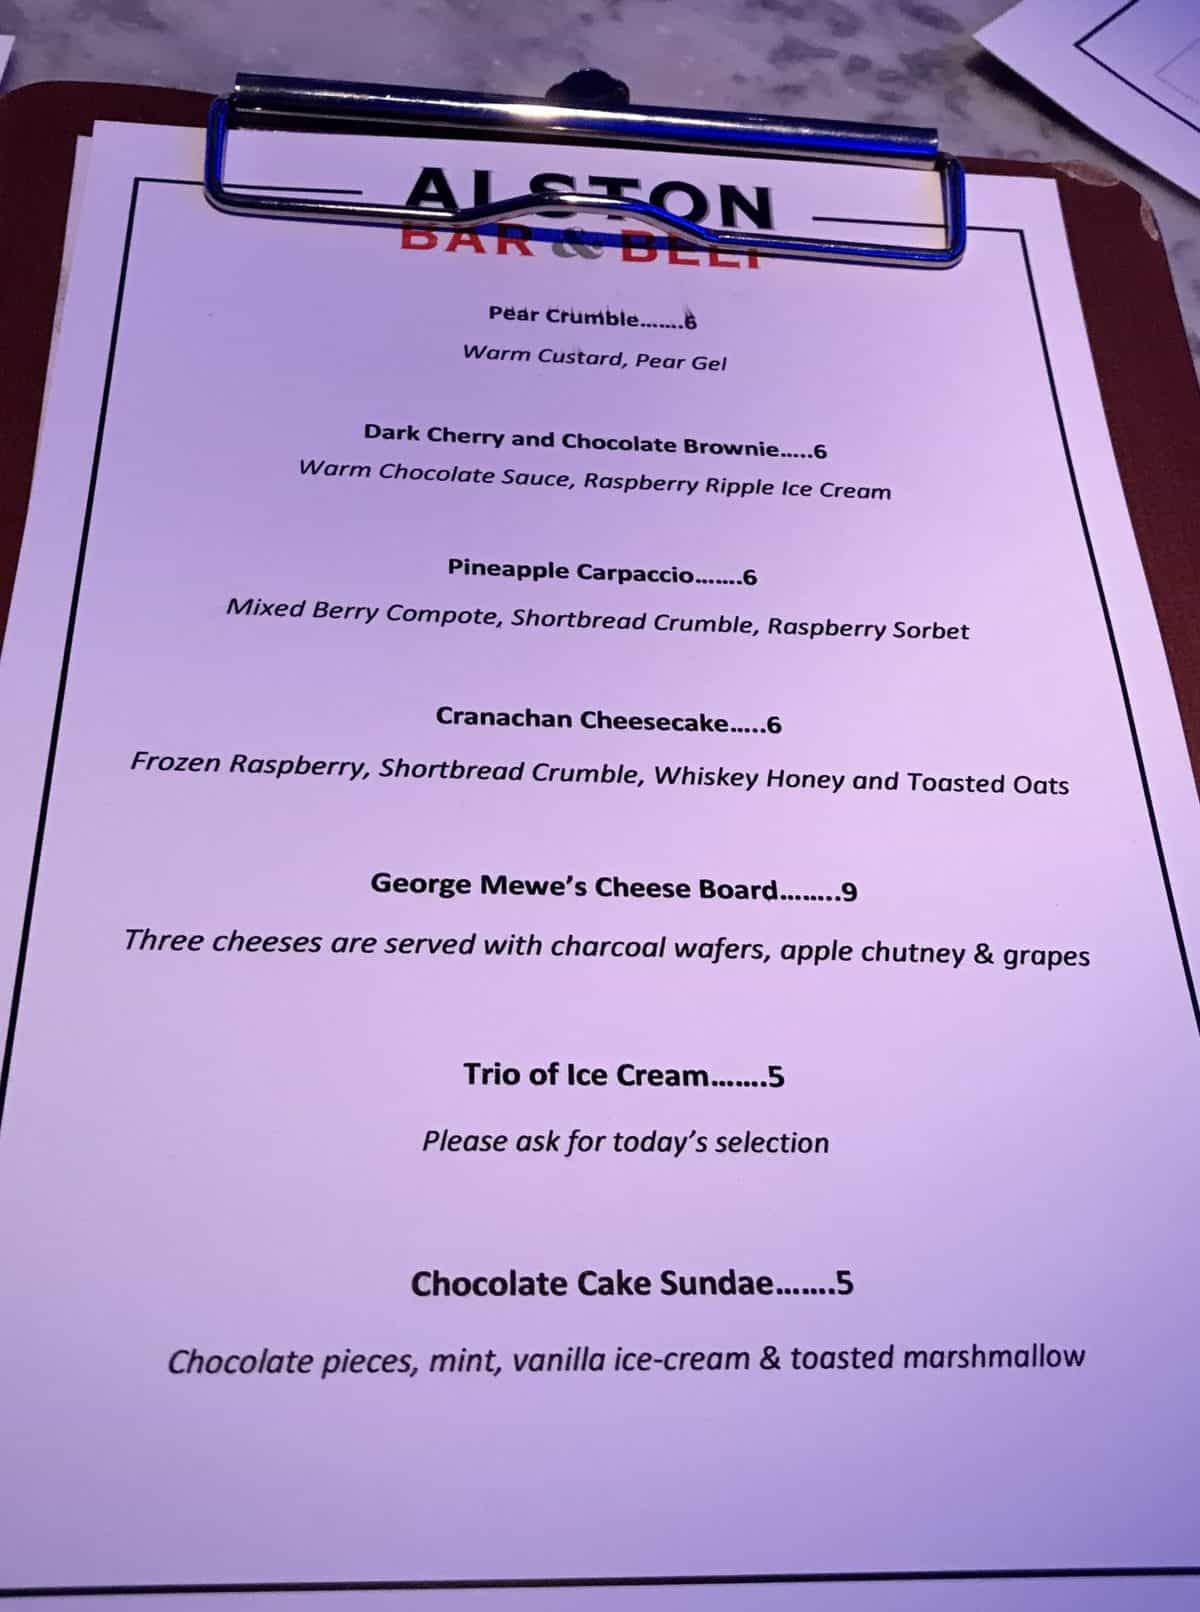 Alston bar and beef dessert menu